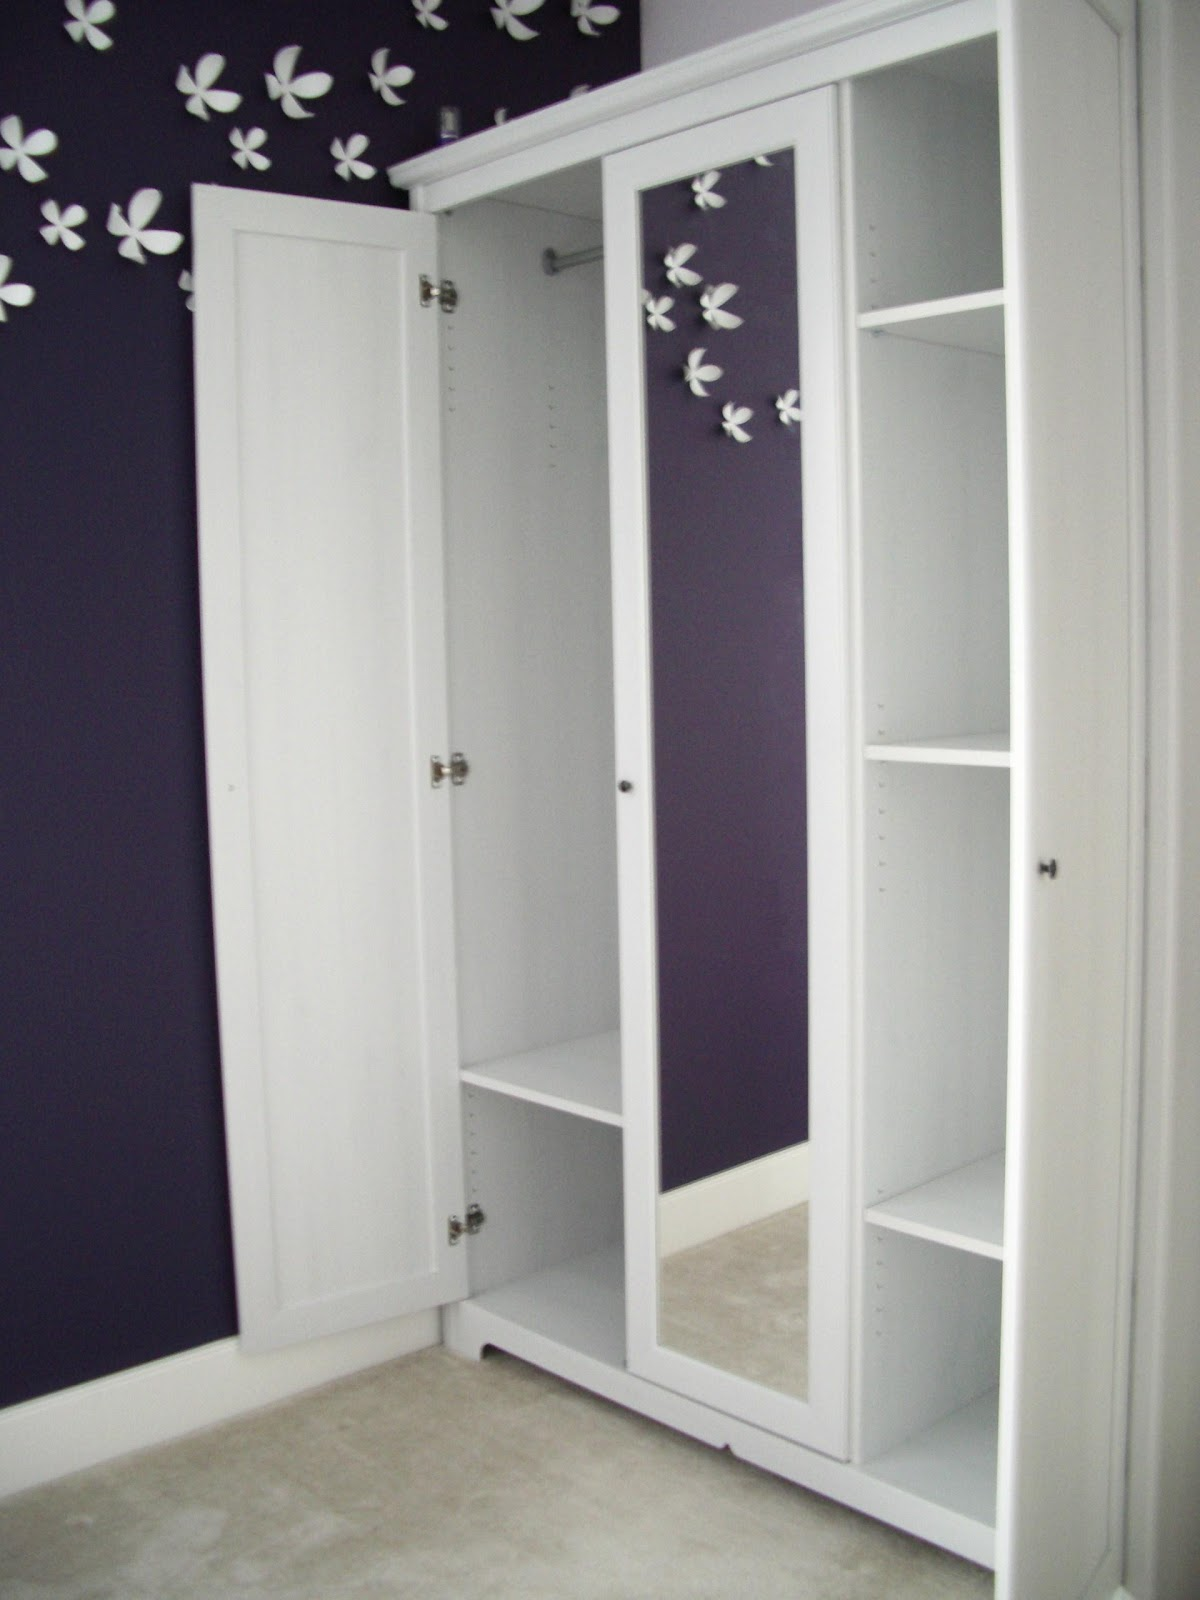 Ikea Faktum Eckschrank Rondell ~   Dressing Room furthermore Wardrobe With Sliding Doors on 3 door